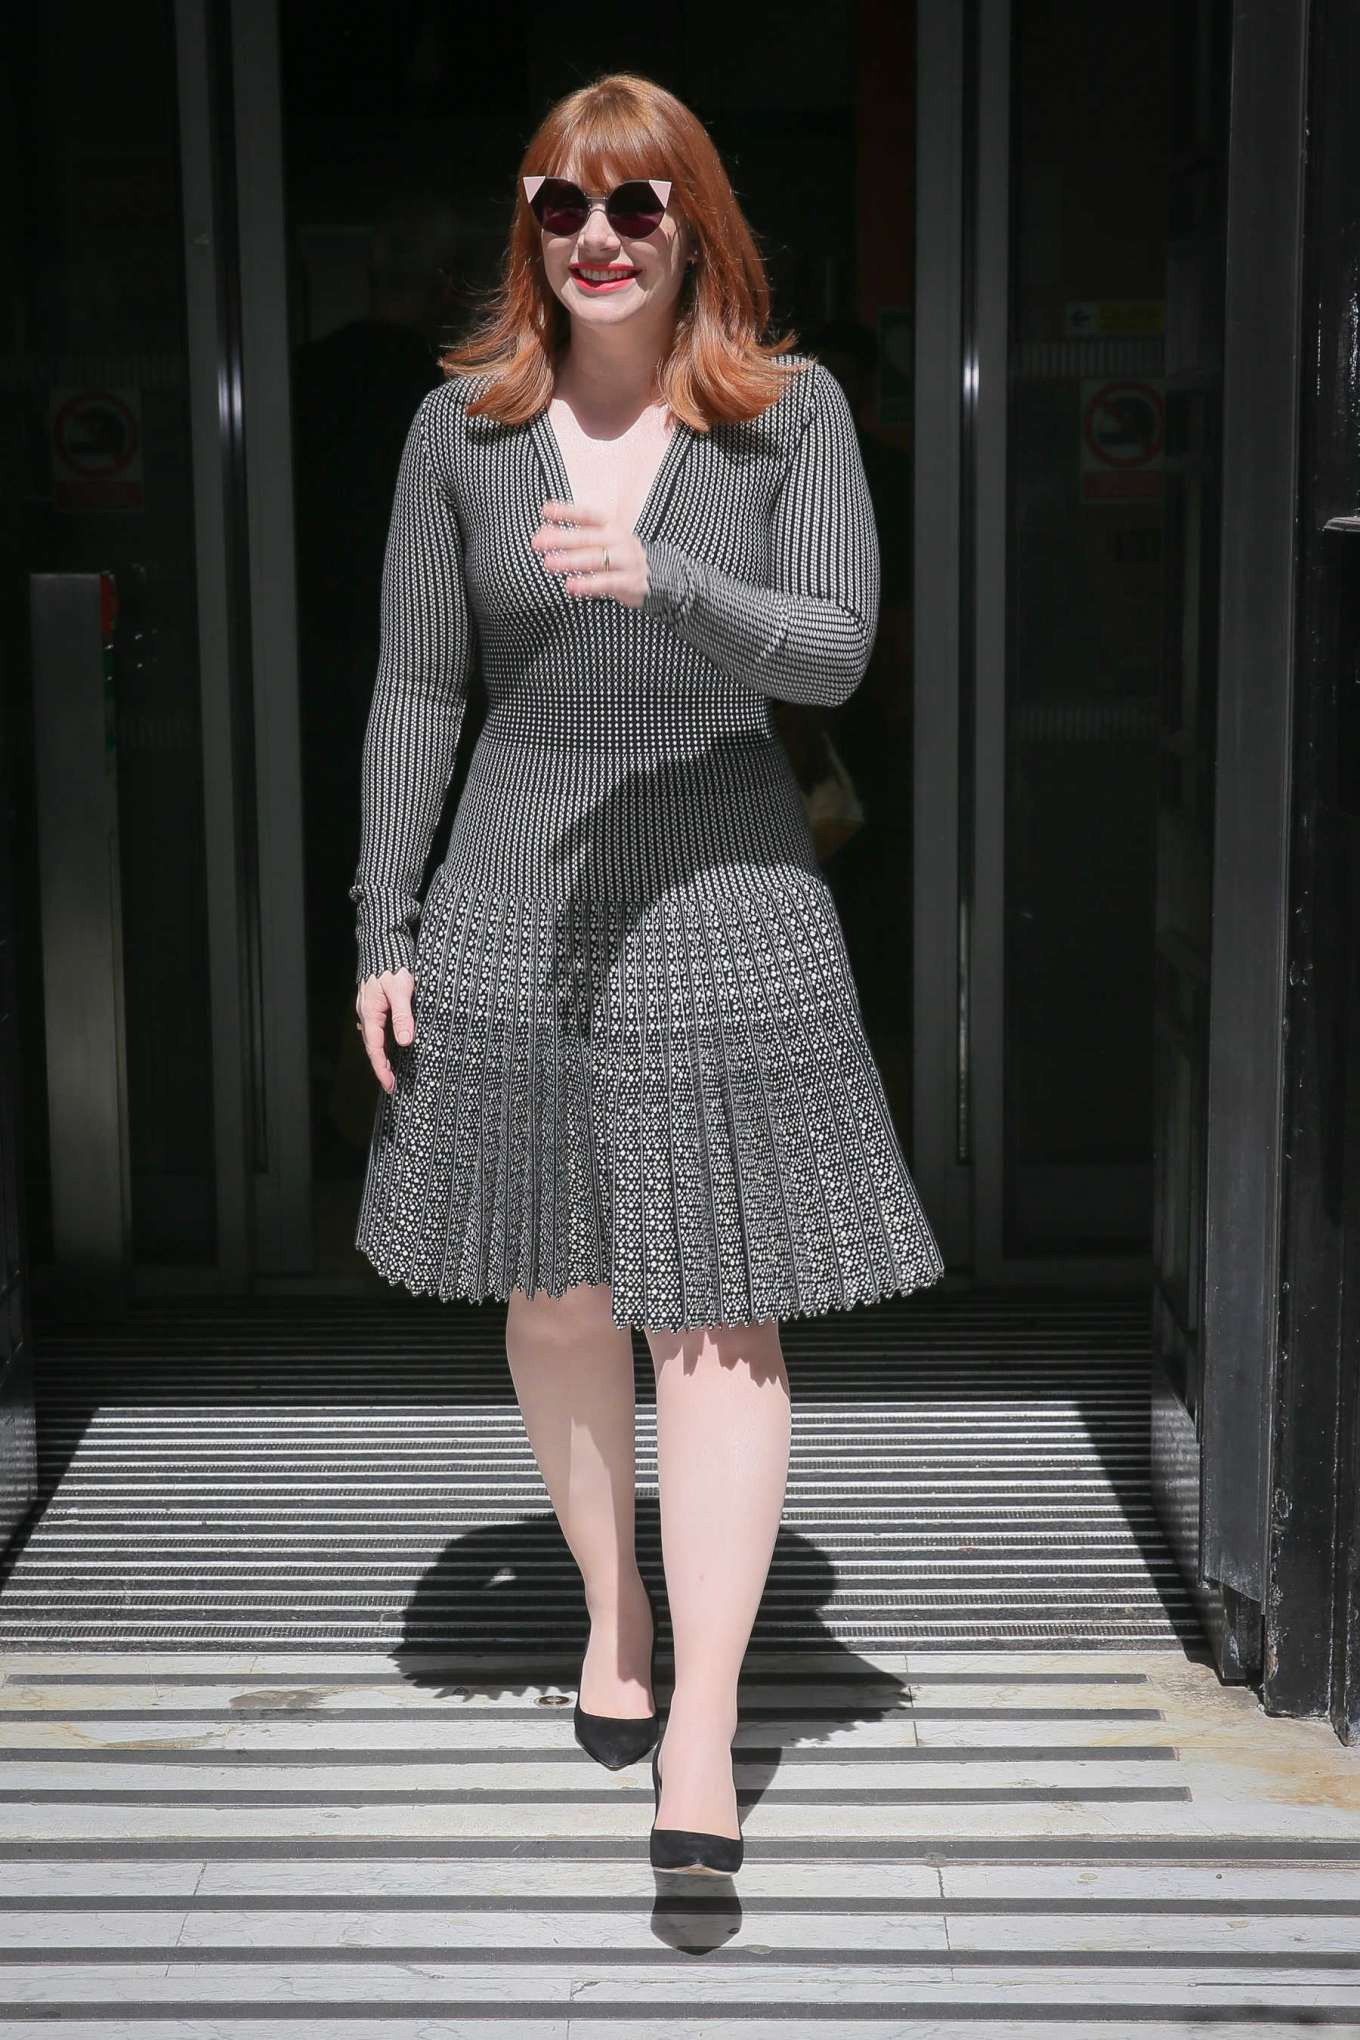 Bryce Dallas Howard 2019 : Bryce Dallas Howard: Out and about in London-12